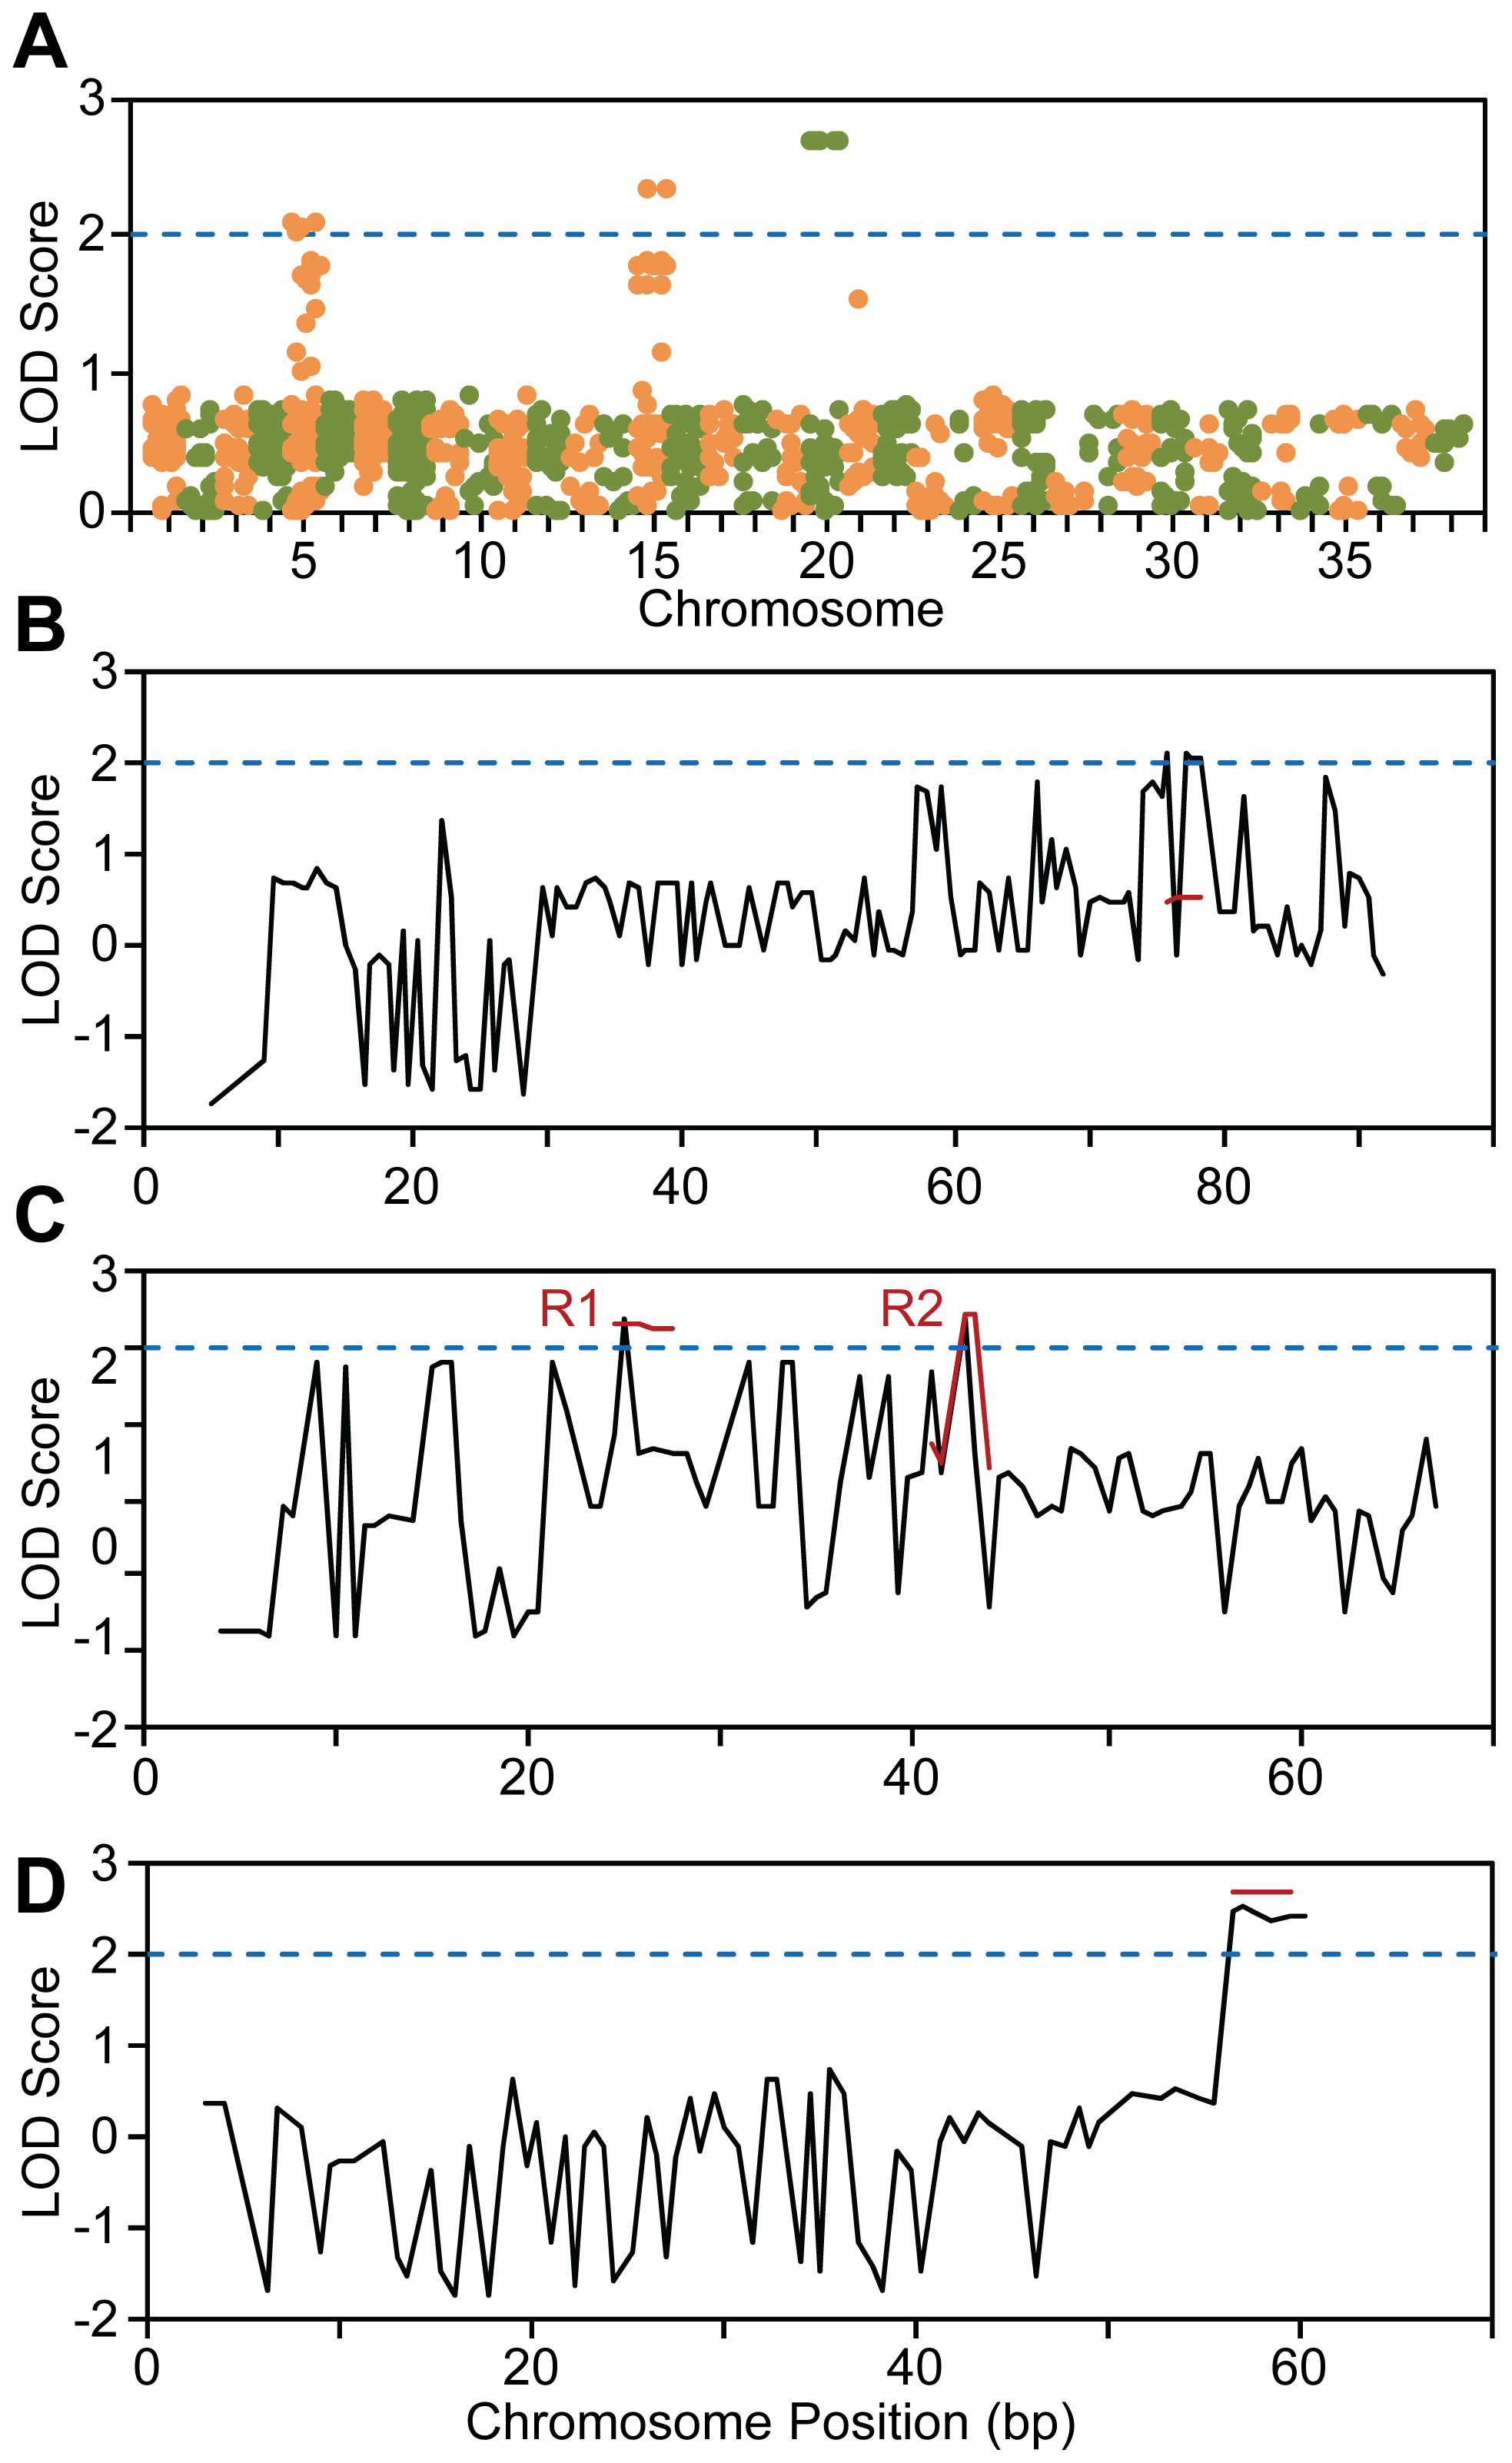 Genome-wide linkage analysis of SNP genotyping data.